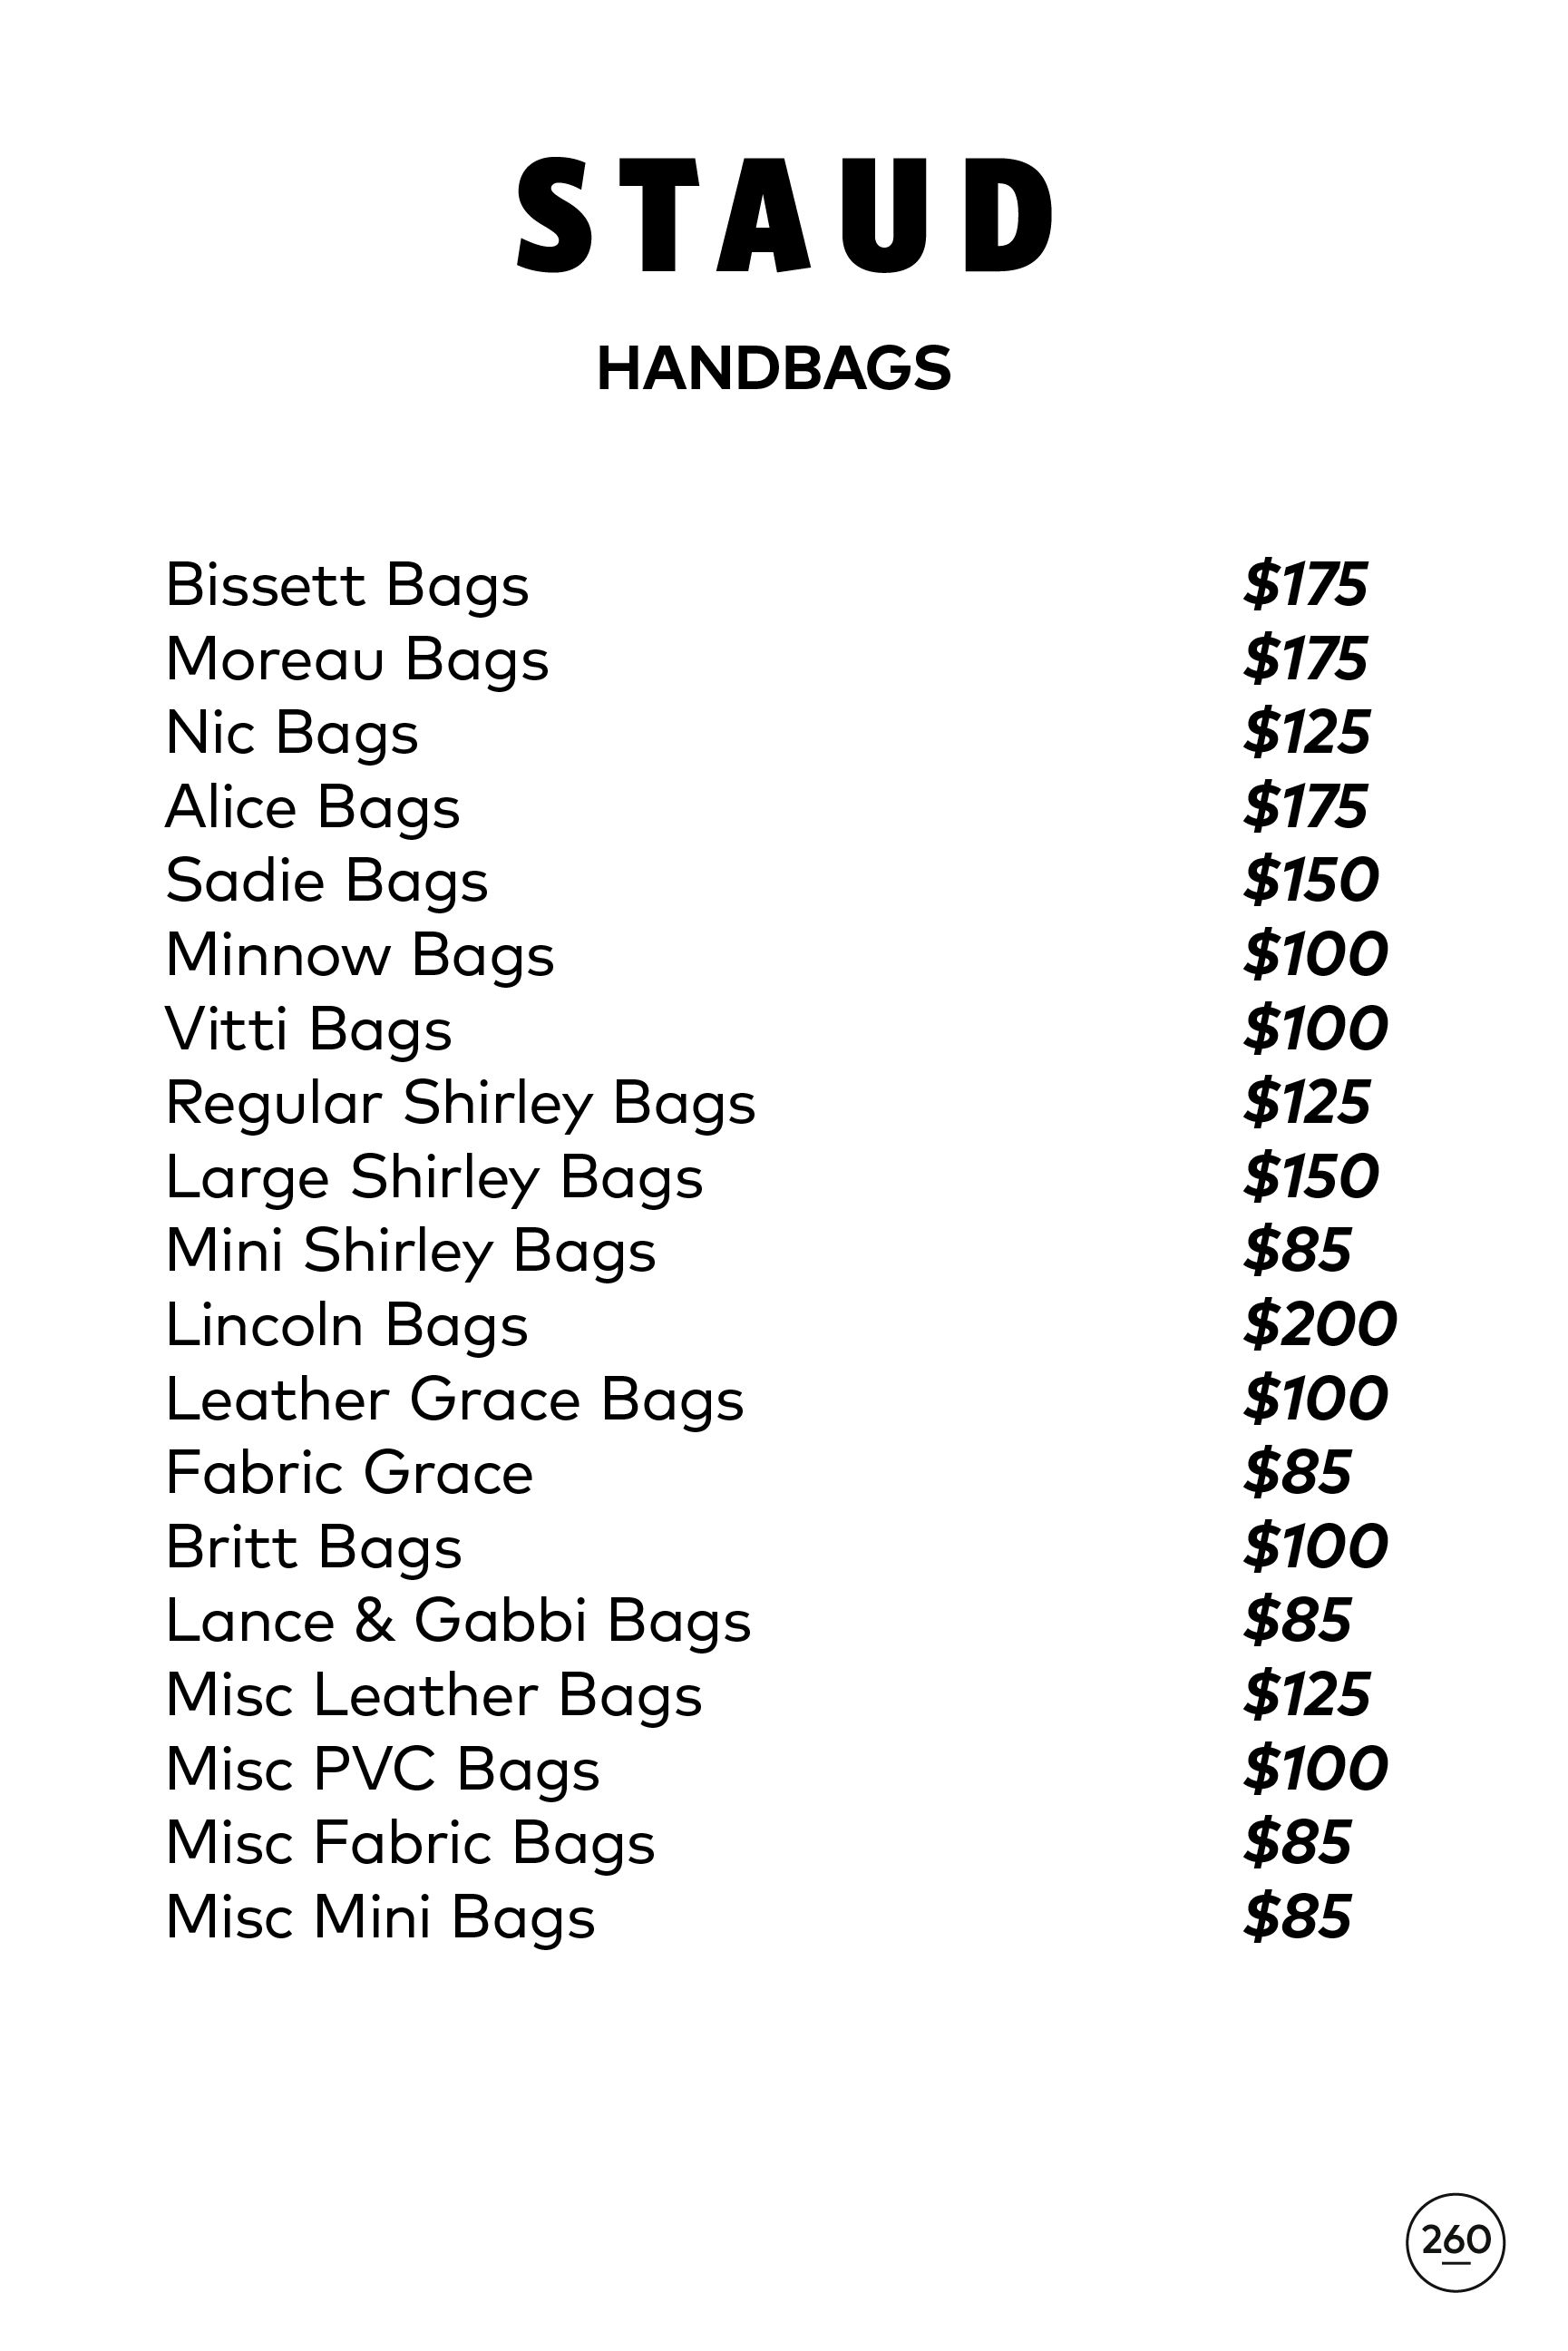 Staud_Pricing-01.png